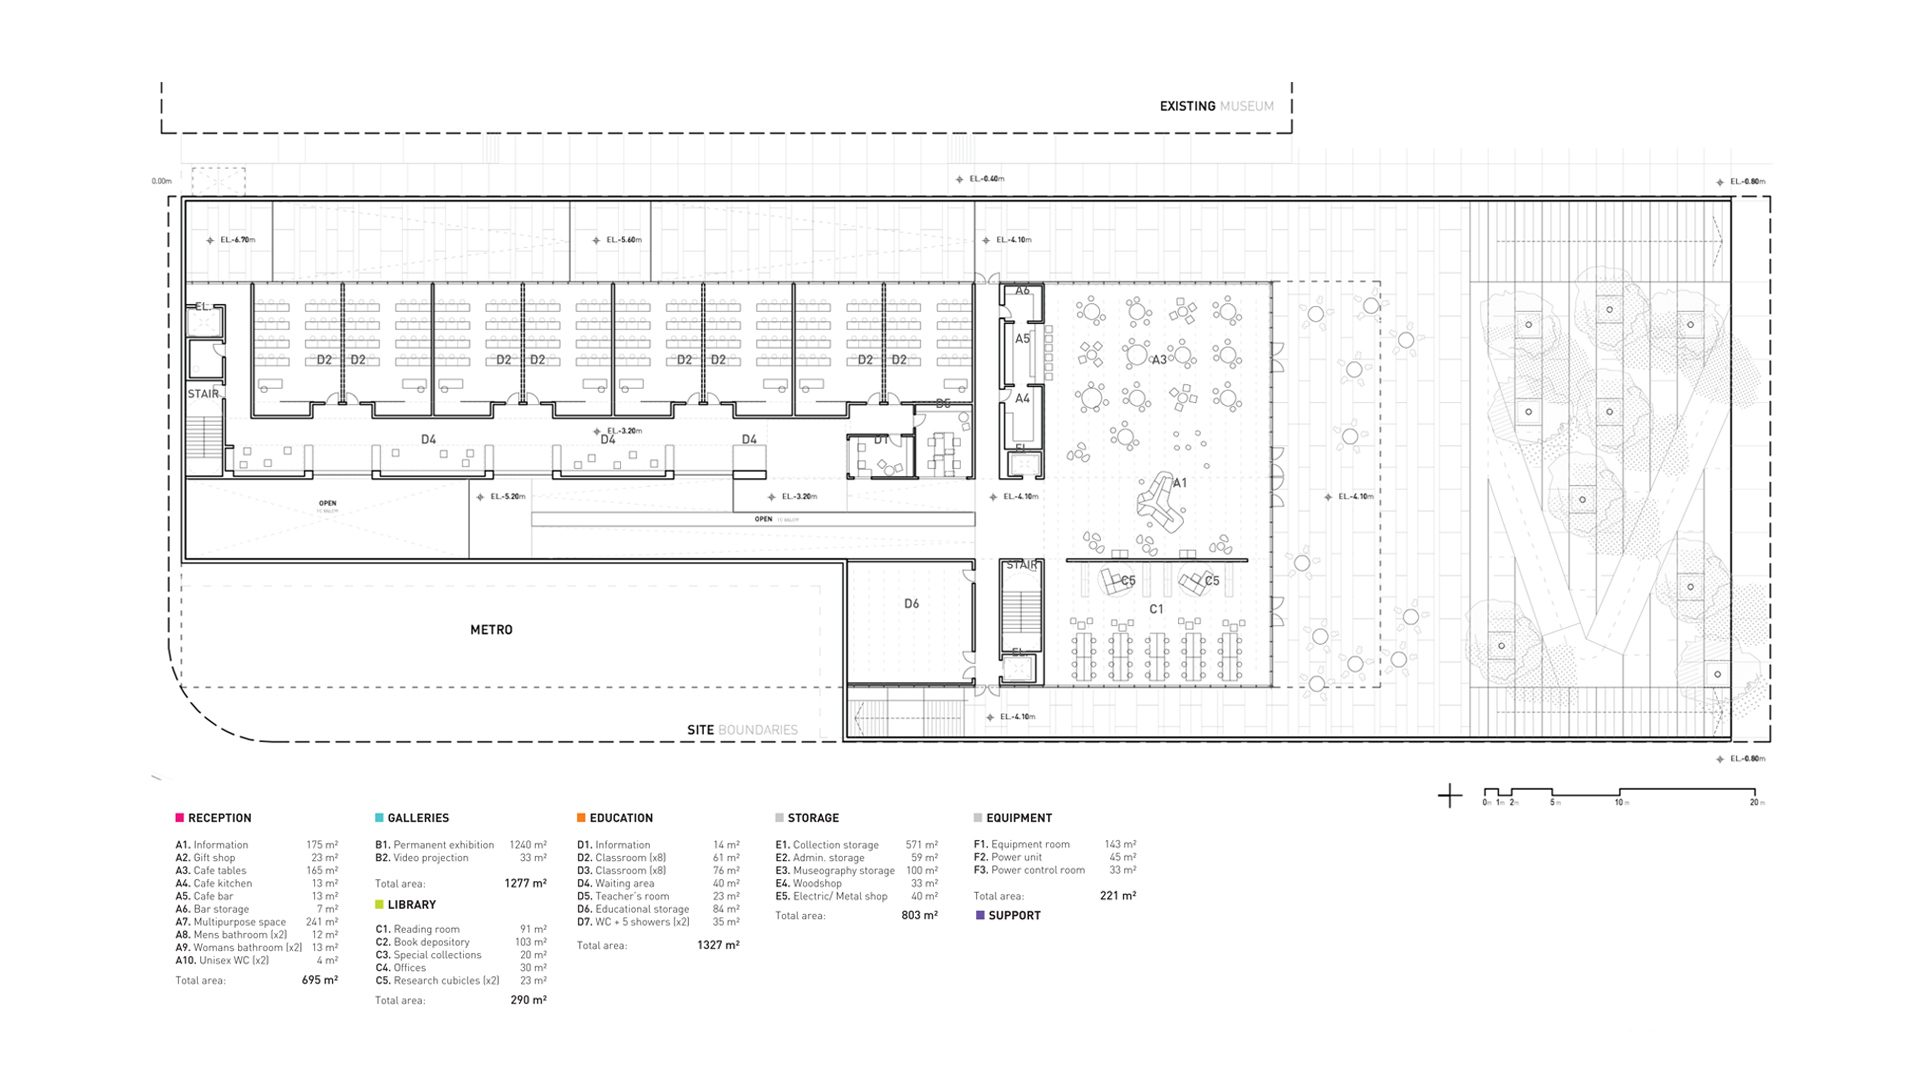 02-FLOOR-PLAN--1-LEGEND